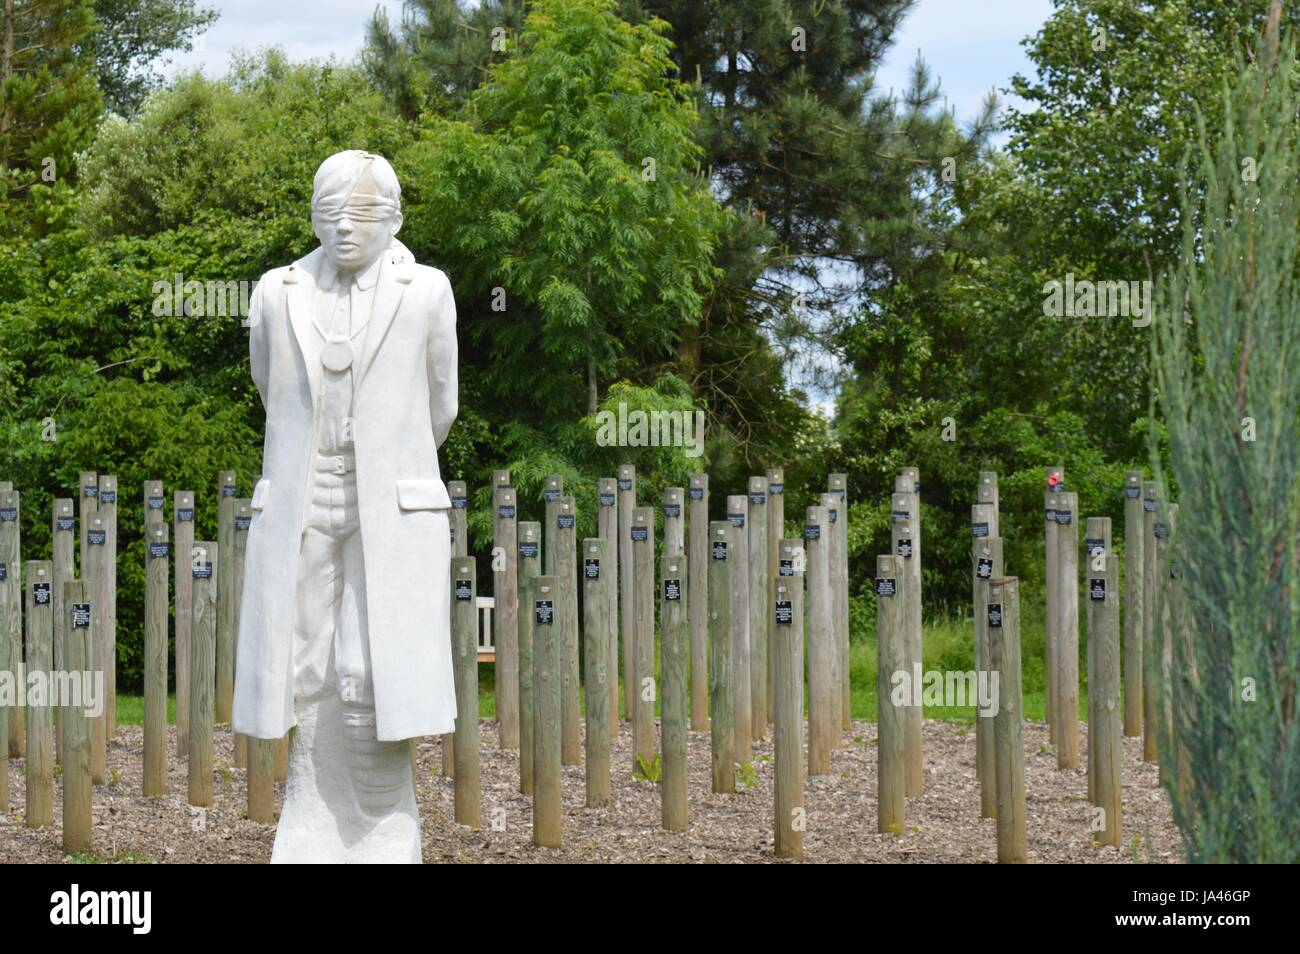 National Memorial Arboretum - Stock Image